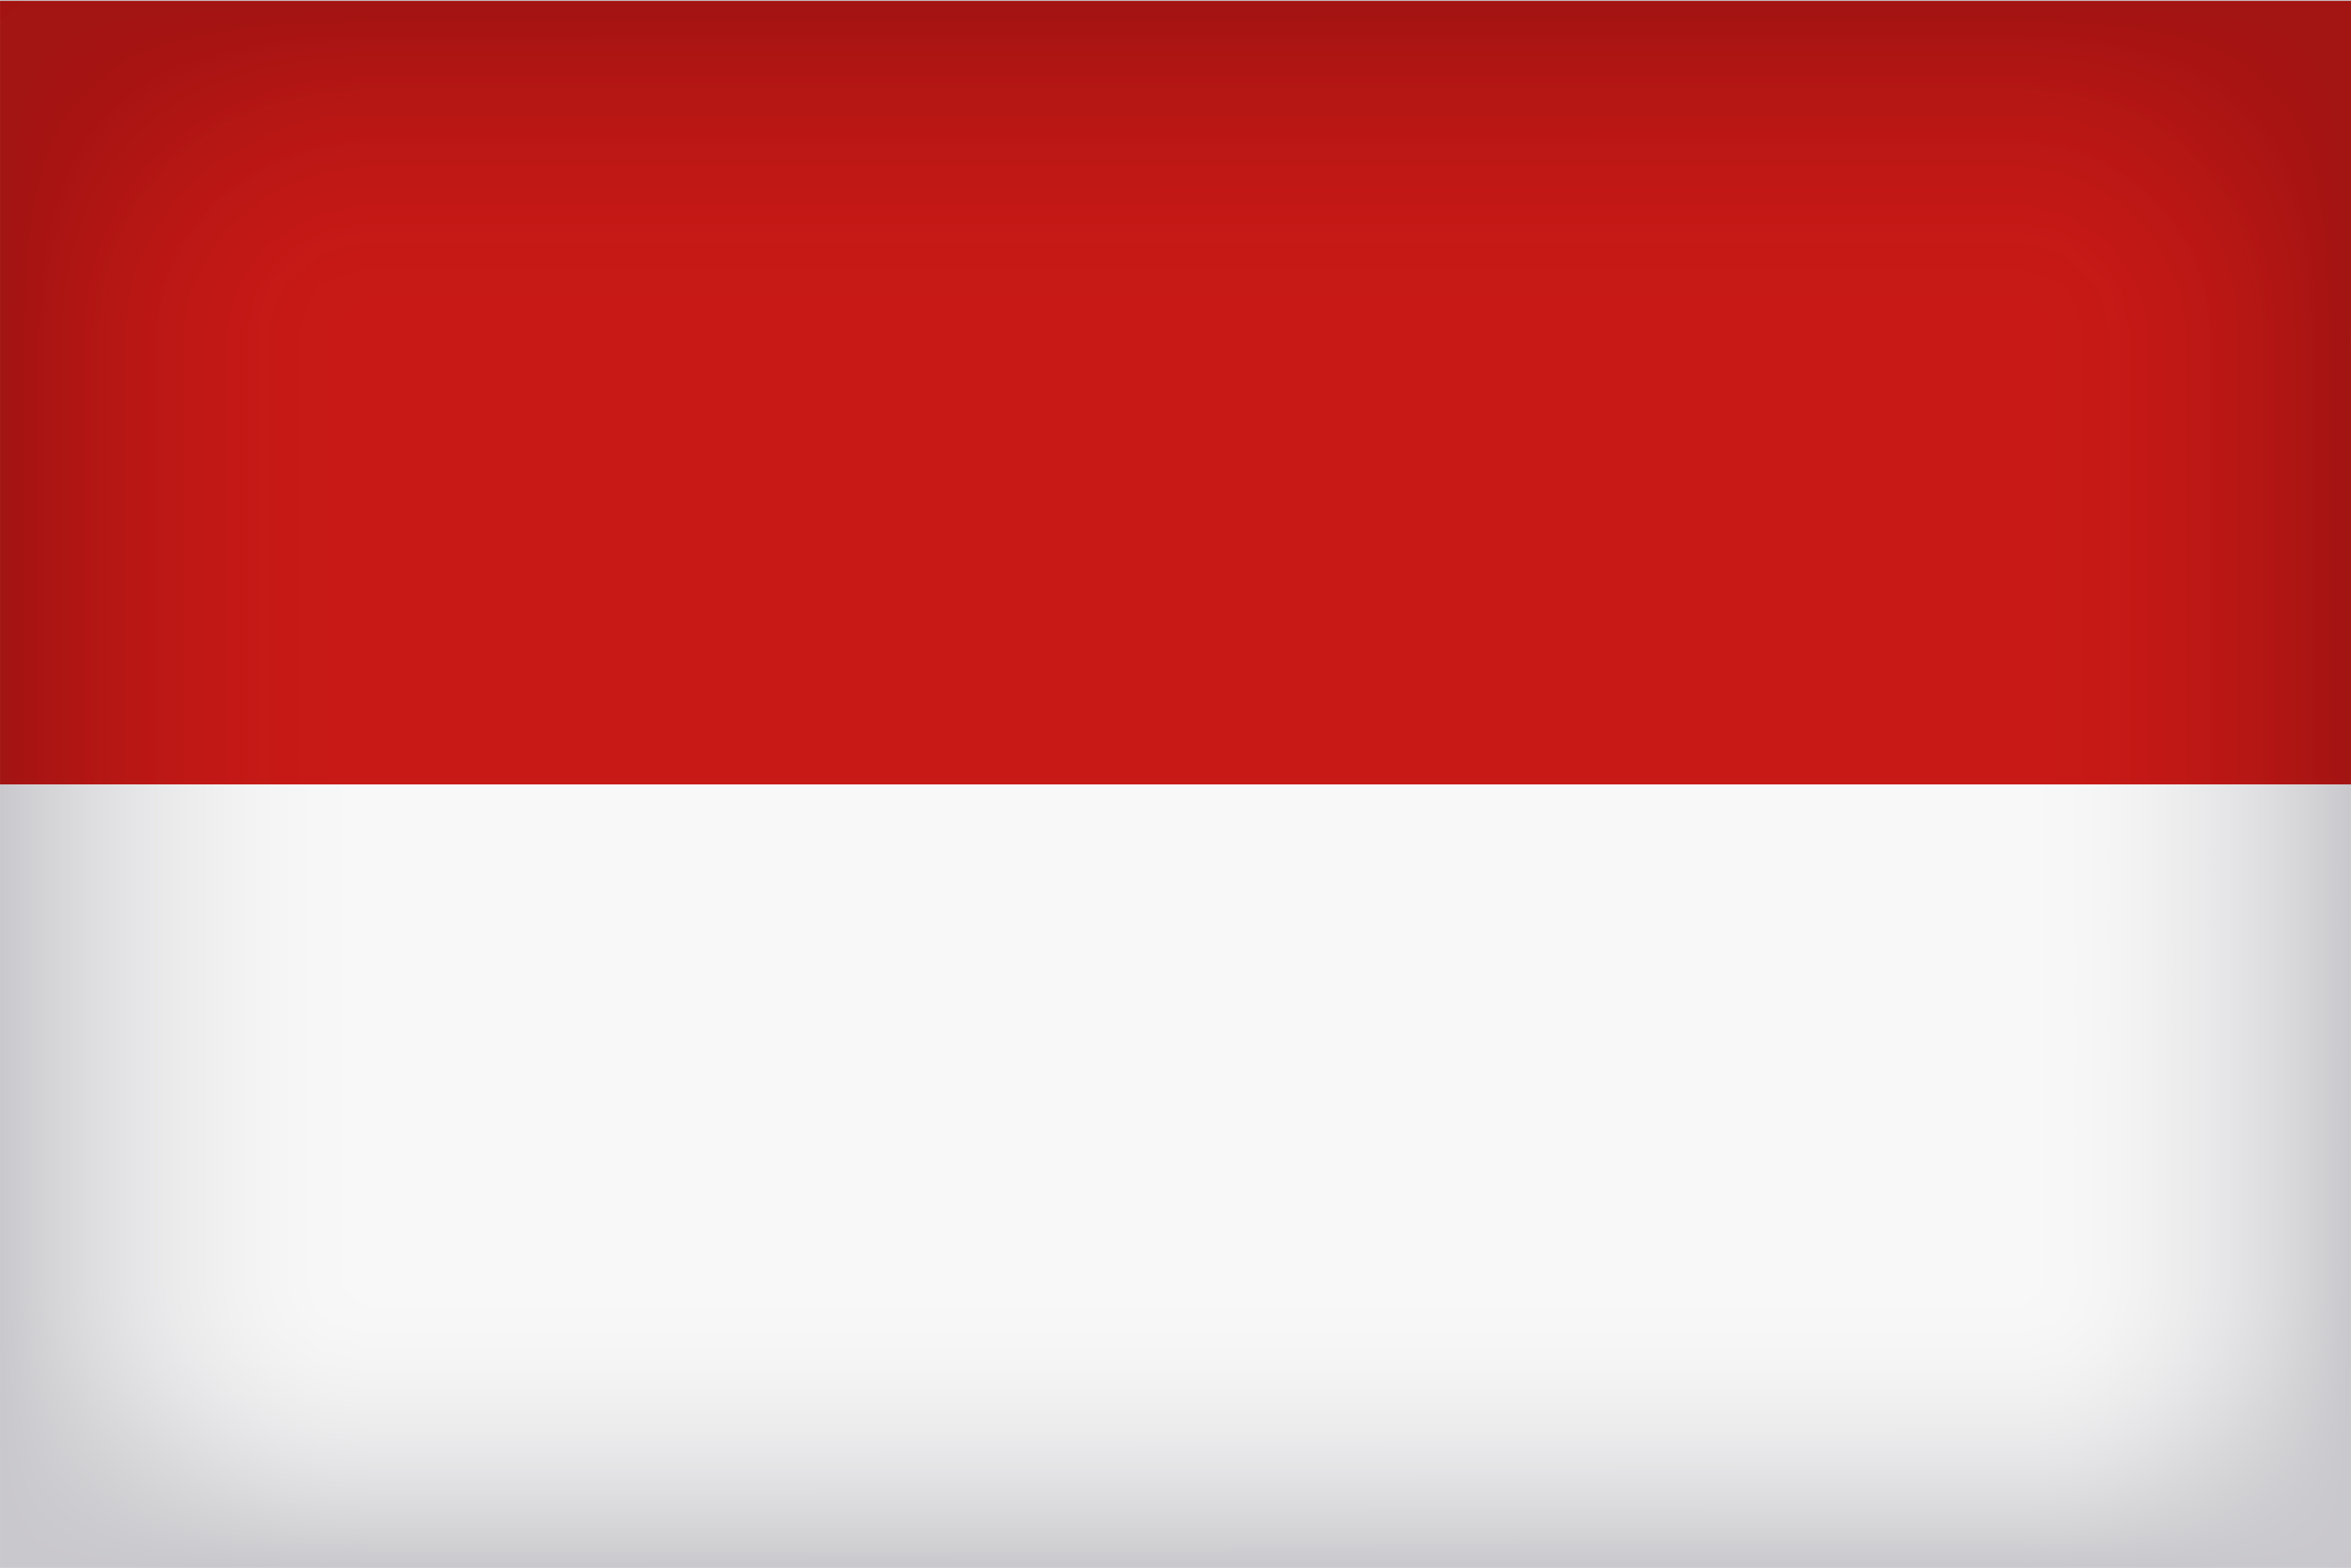 Indonesia flag clipart vector transparent library Indonesia_Large_Flag.png?m=1441189183 vector transparent library